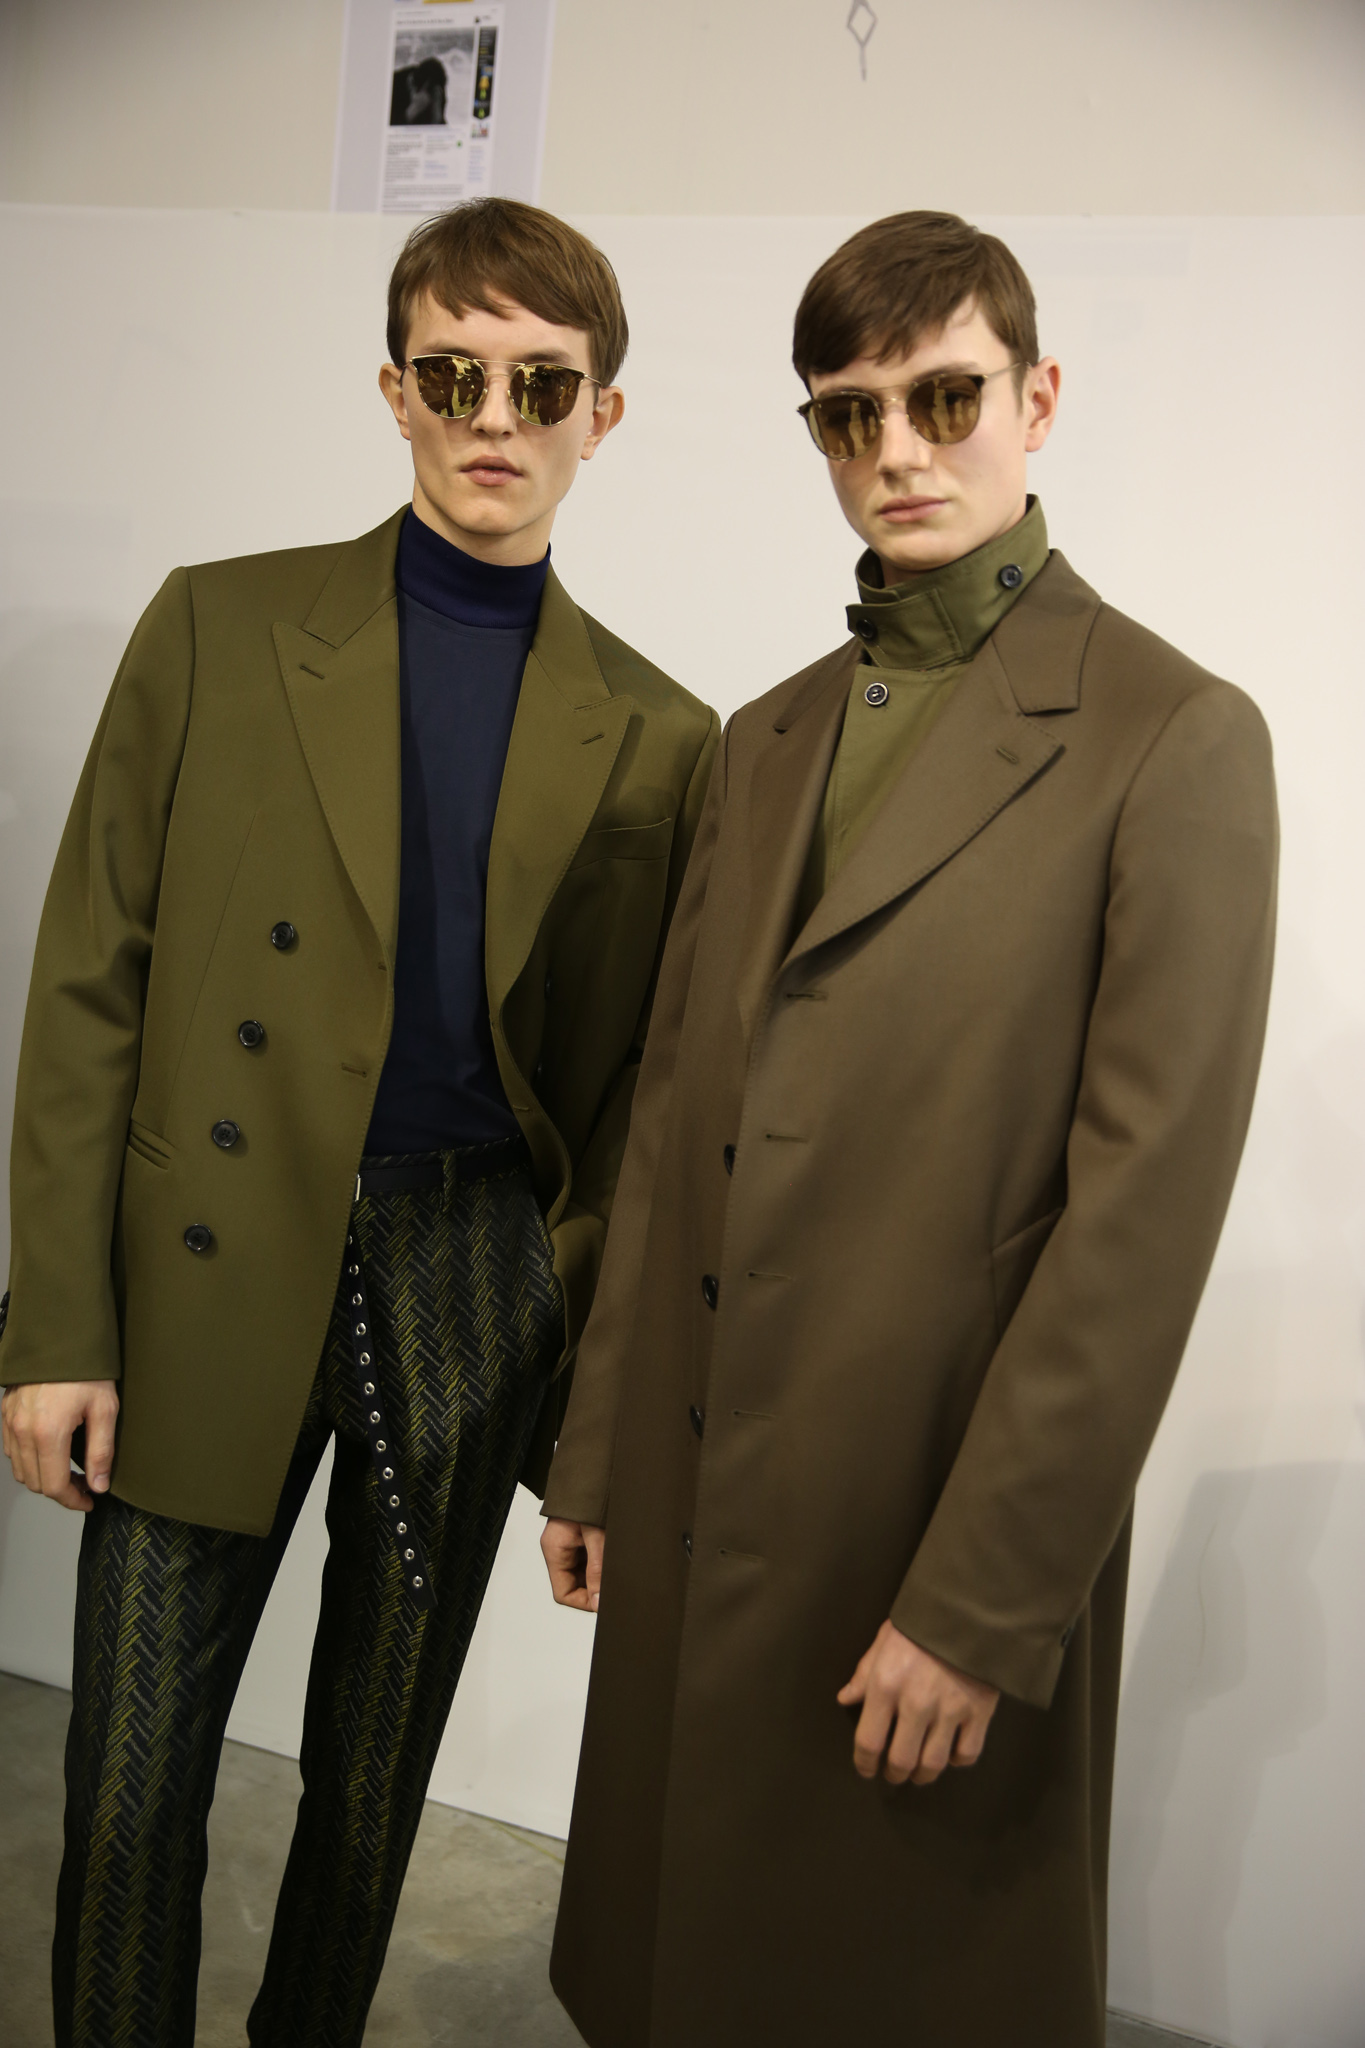 Backstage at Cerrutti 1881 Men's Fall 2018